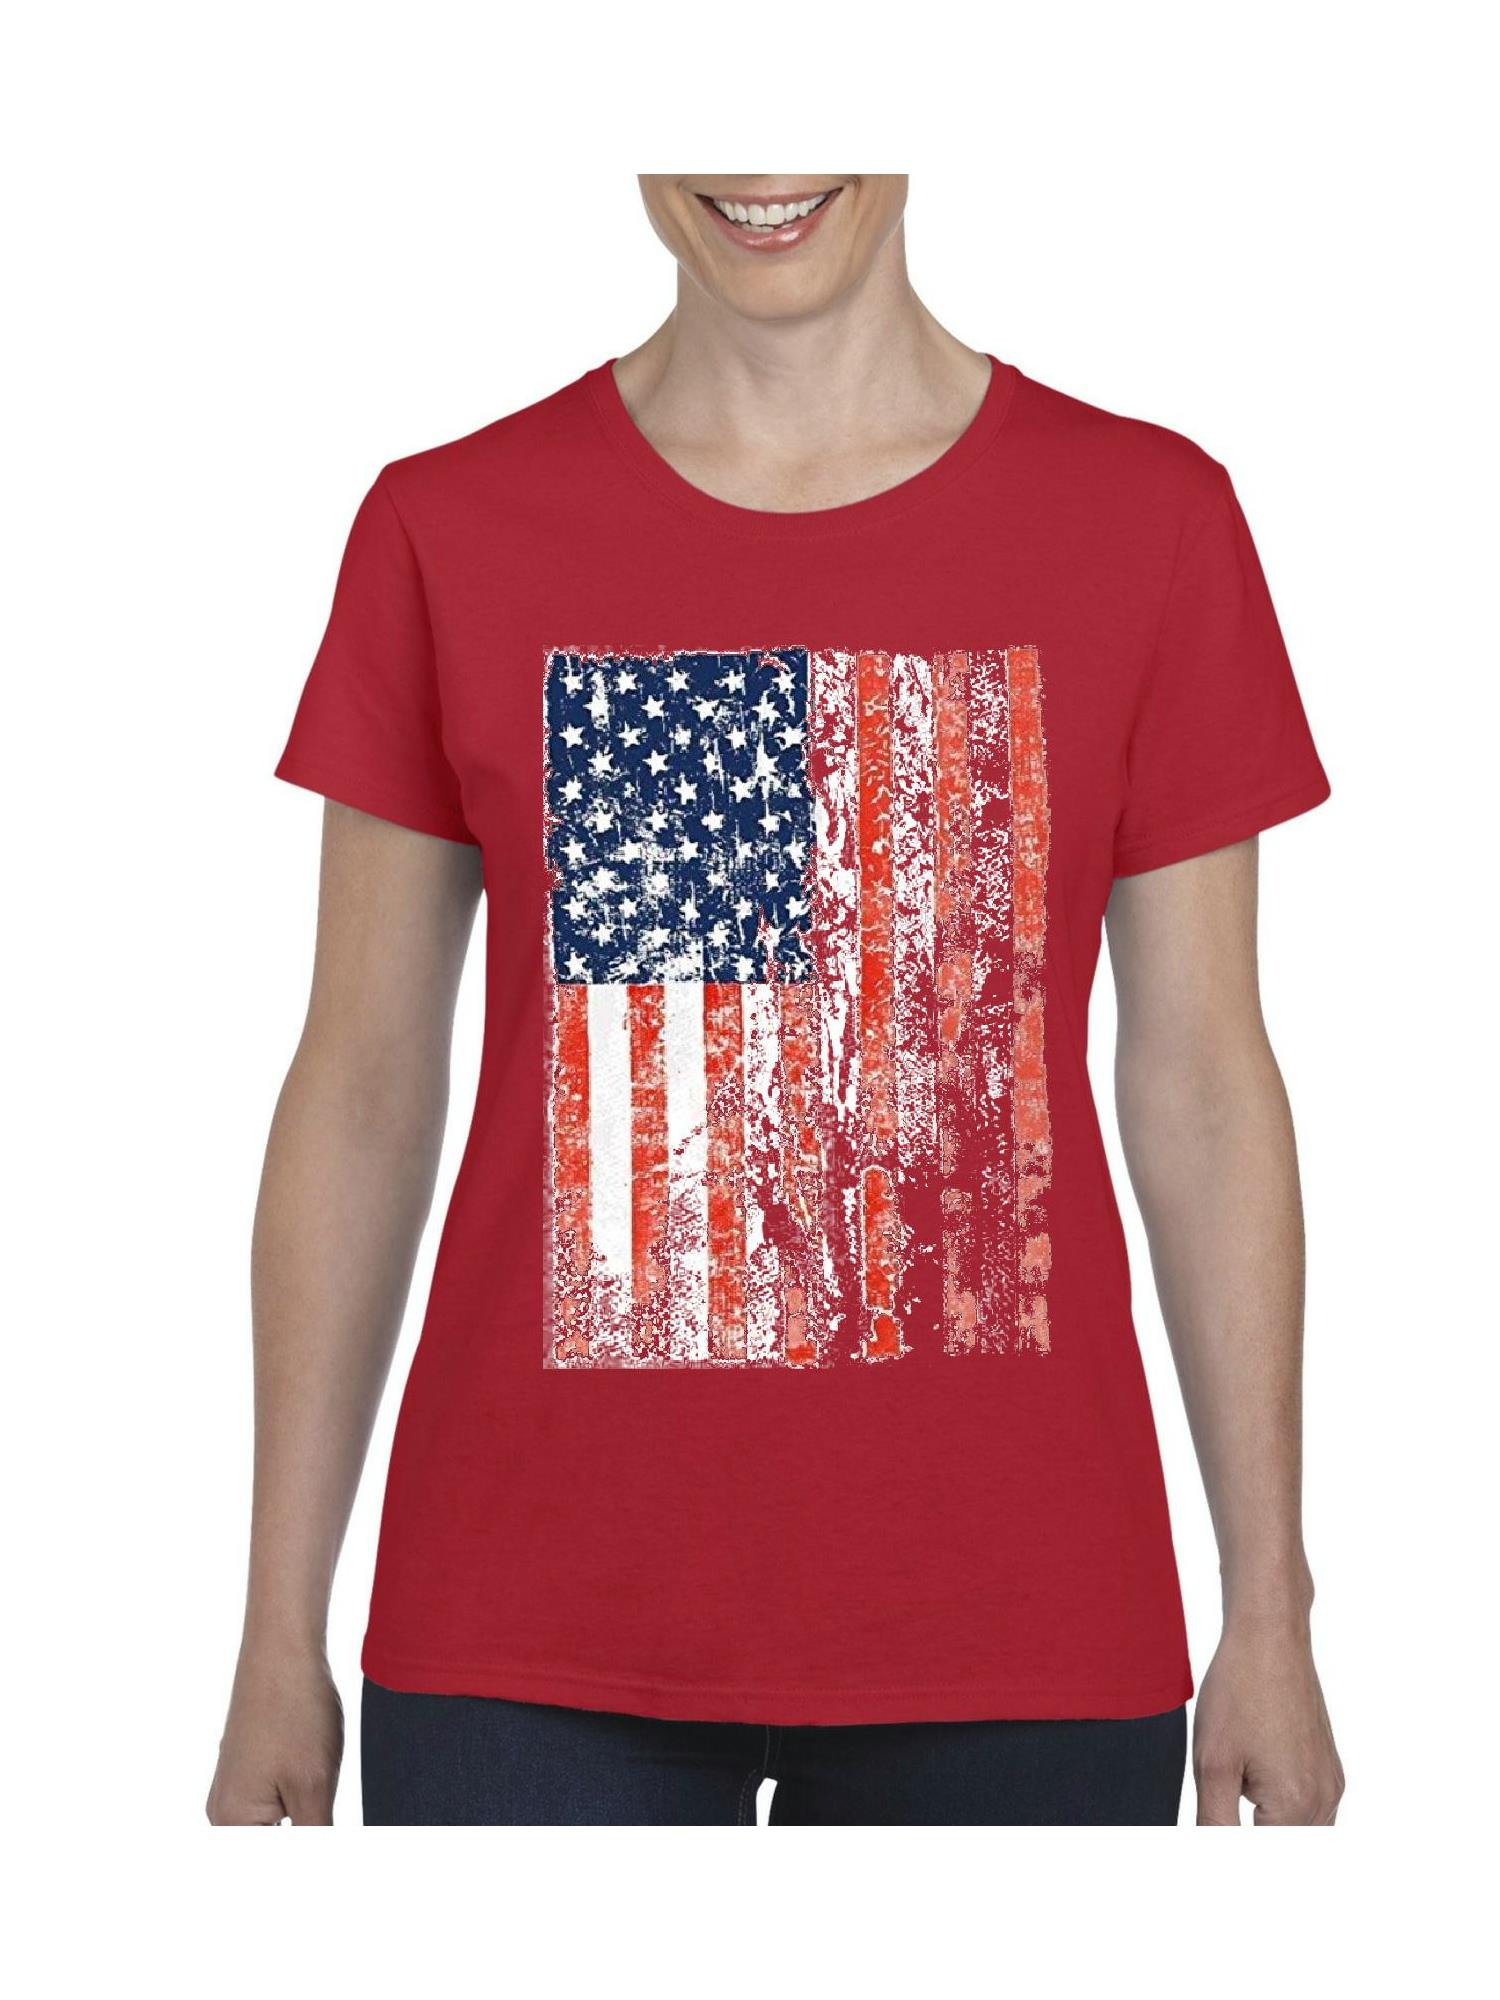 Patriotic America Toddler T-Shirt SpiritForged Apparel Vintage USA Red 2T